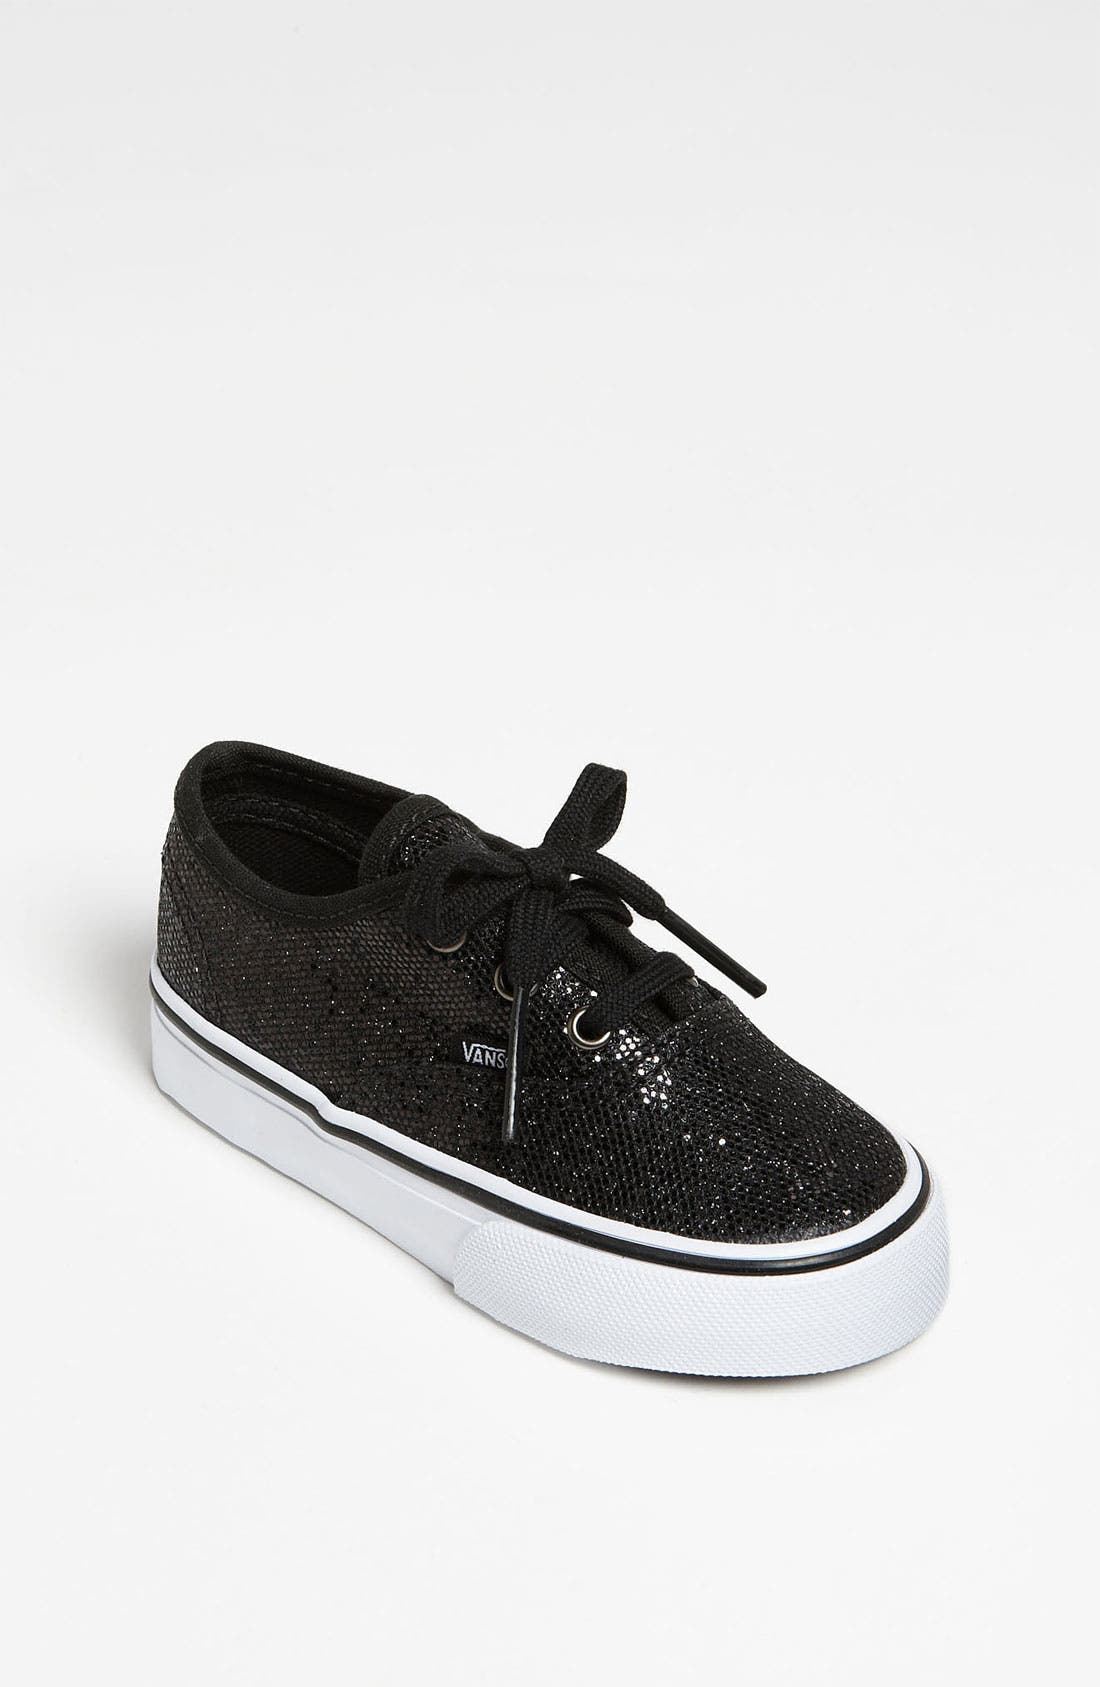 Alternate Image 1 Selected - Vans 'Authentic' Sneaker (Baby, Walker & Toddler)